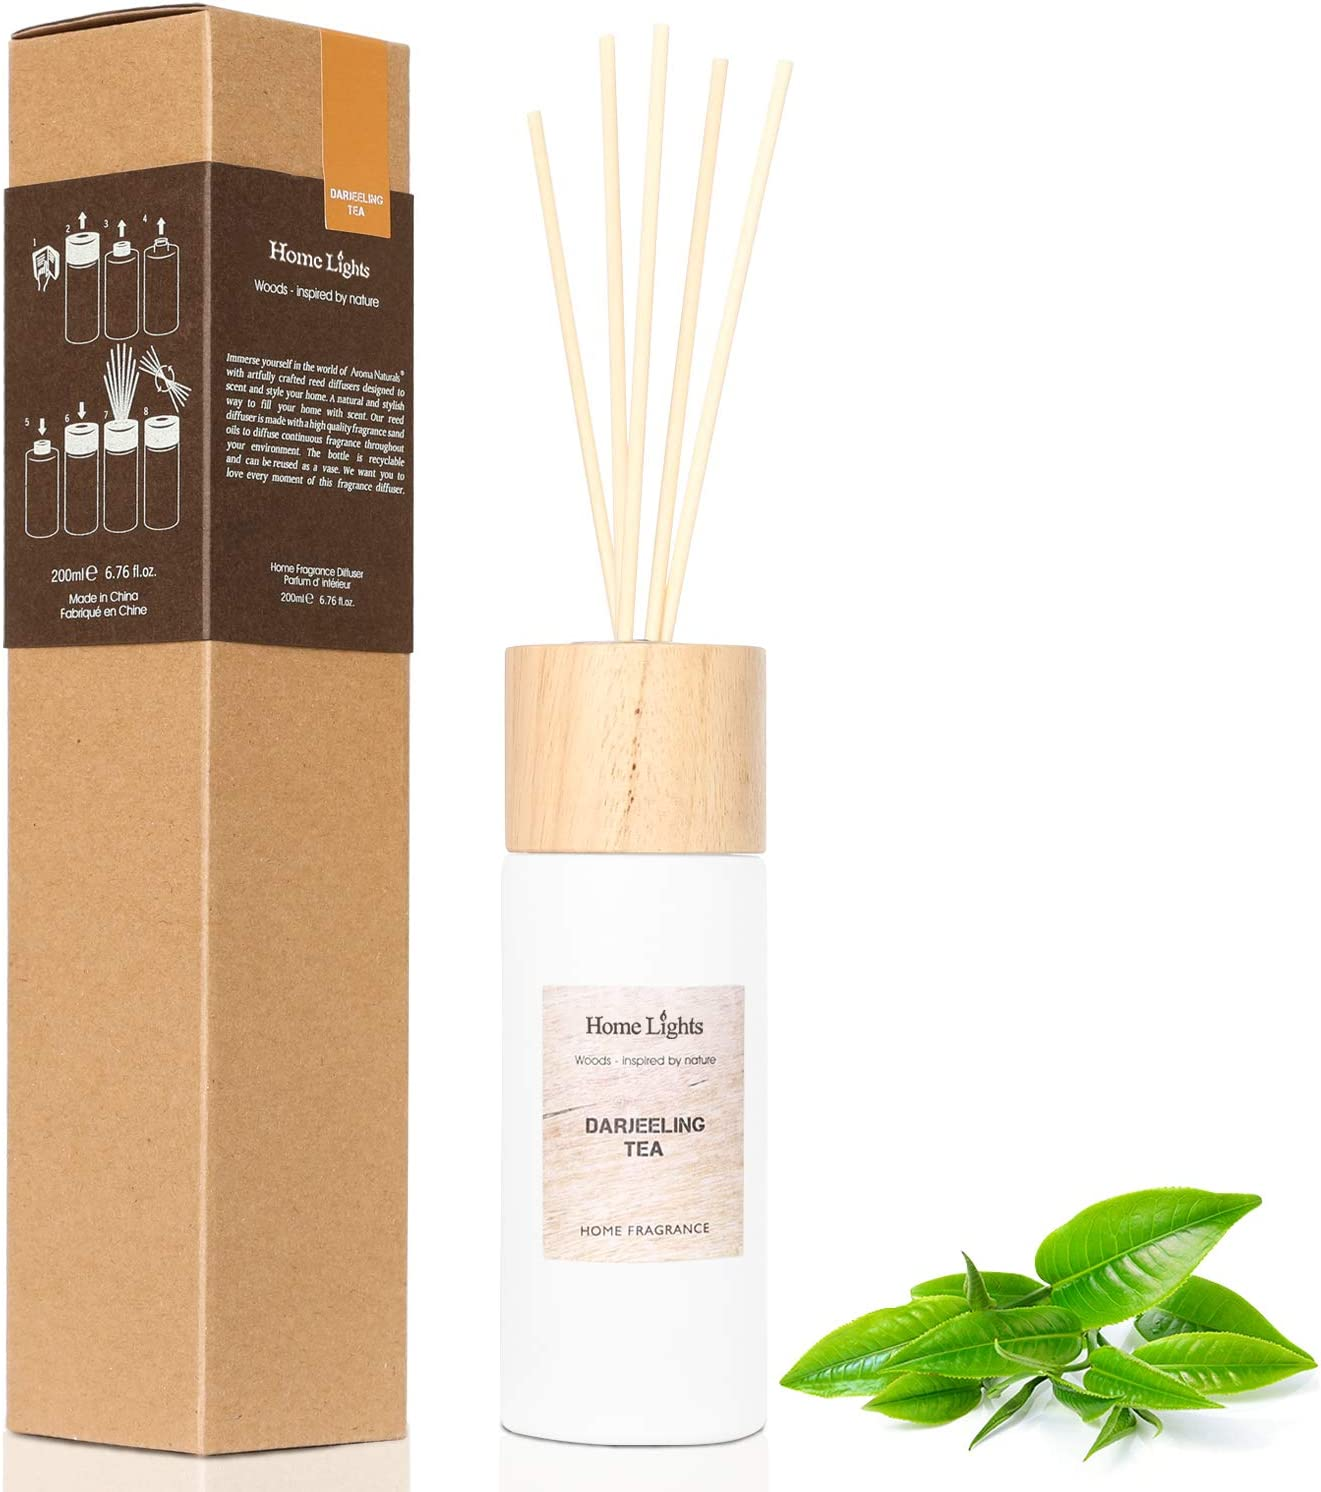 Home Lights Reed Diffuser Gift Set, Wooden Lid, Natural Scented Long Lasting Darjeeling Tea Fragrance Oil for Home Office Gift Idea, Aromatherapy Air Freshener and Stress Relief, 200ml/6.76 fl.oz